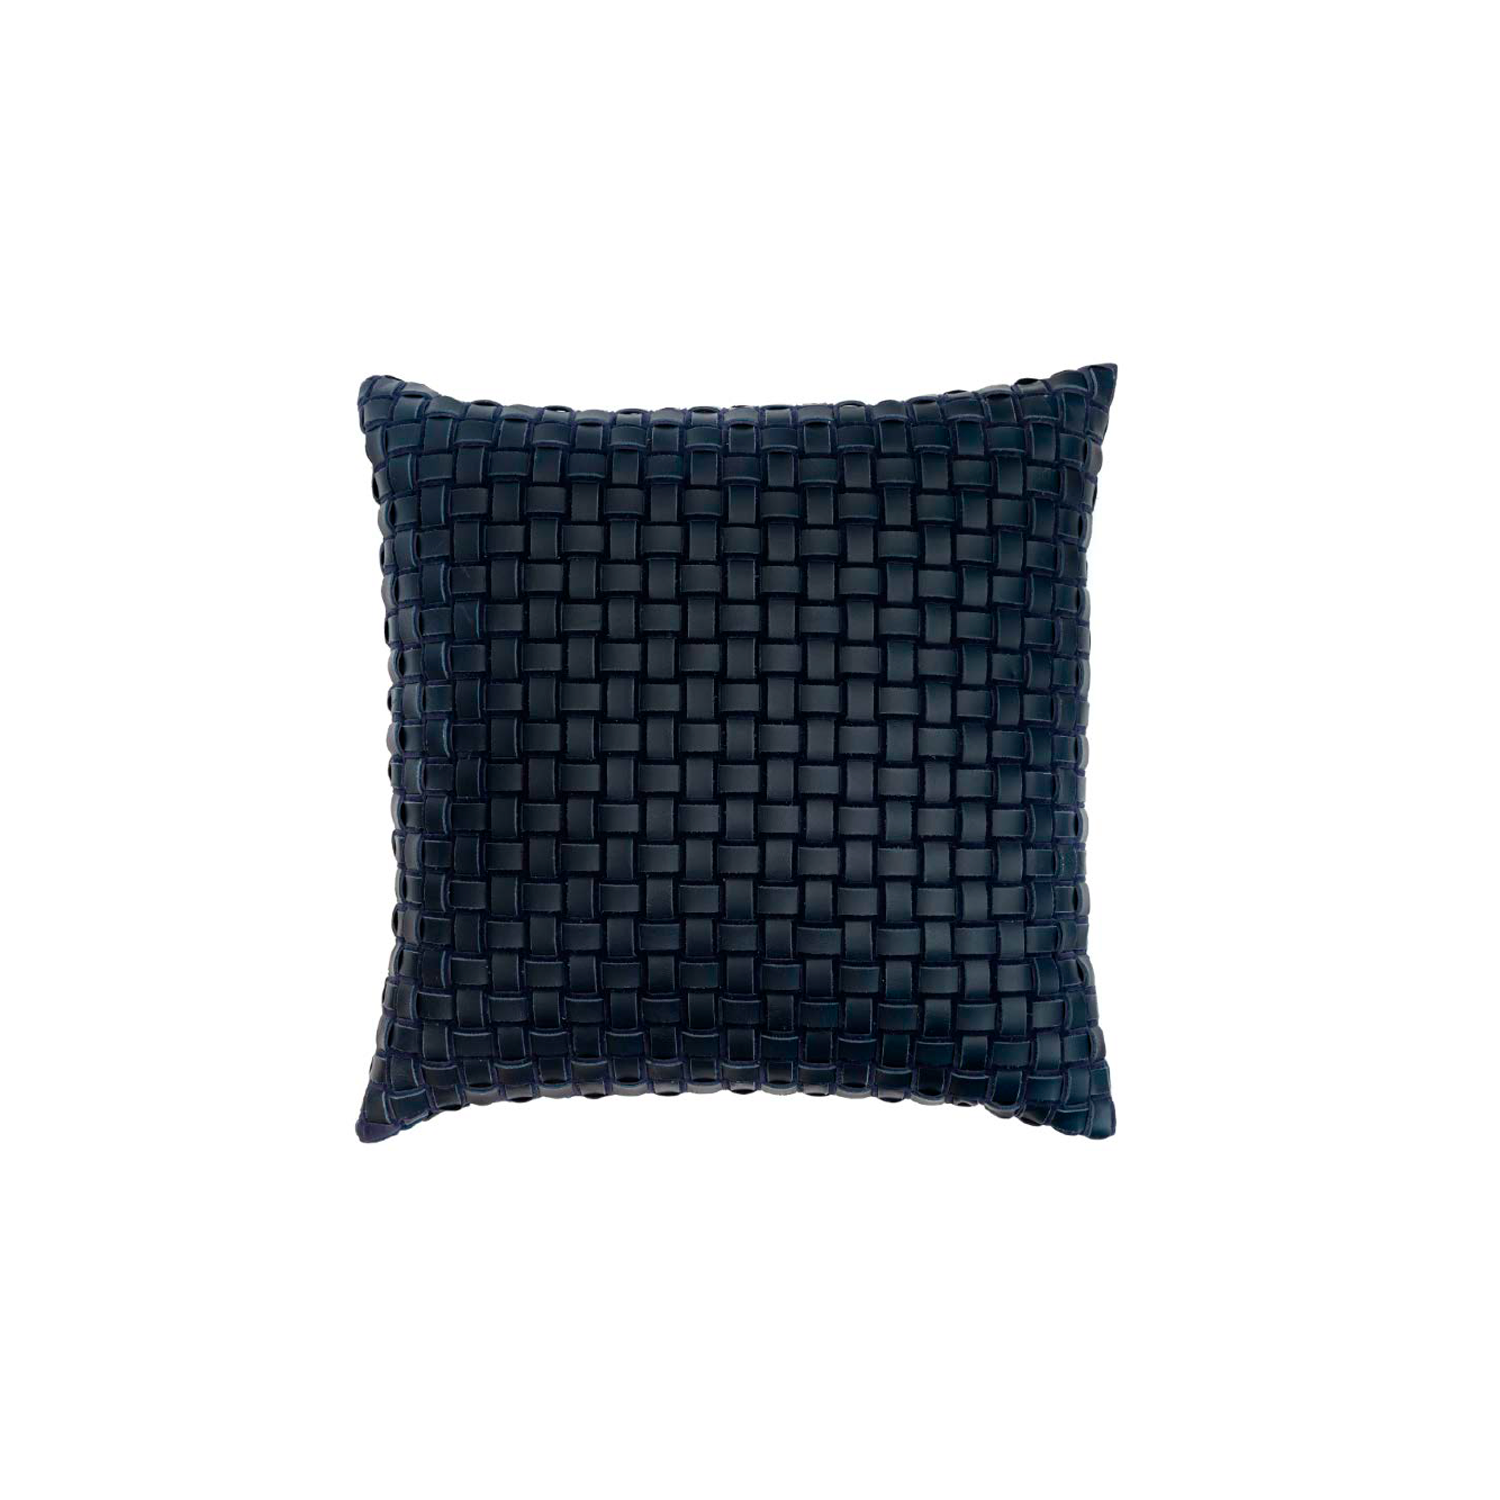 Maxi Mosaico Duplo Woven Leather Cushion Square - The Maxi Mosaico Duplo Woven Leather Cushion is designed to complement an ambient with a natural and sophisticated feeling. This cushion style is available in pleated leather or pleated suede leather. Elisa Atheniense woven handmade leather cushions are specially manufactured in Brazil using an exclusive treated leather that brings the soft feel touch to every single piece.   The front panel is handwoven in leather and the back panel is 100% Pes, made in Brazil.  The inner cushion is available in Hollow Fibre and European Duck Feathers, made in the UK.  Please enquire for more information and see colour chart for reference.   | Matter of Stuff